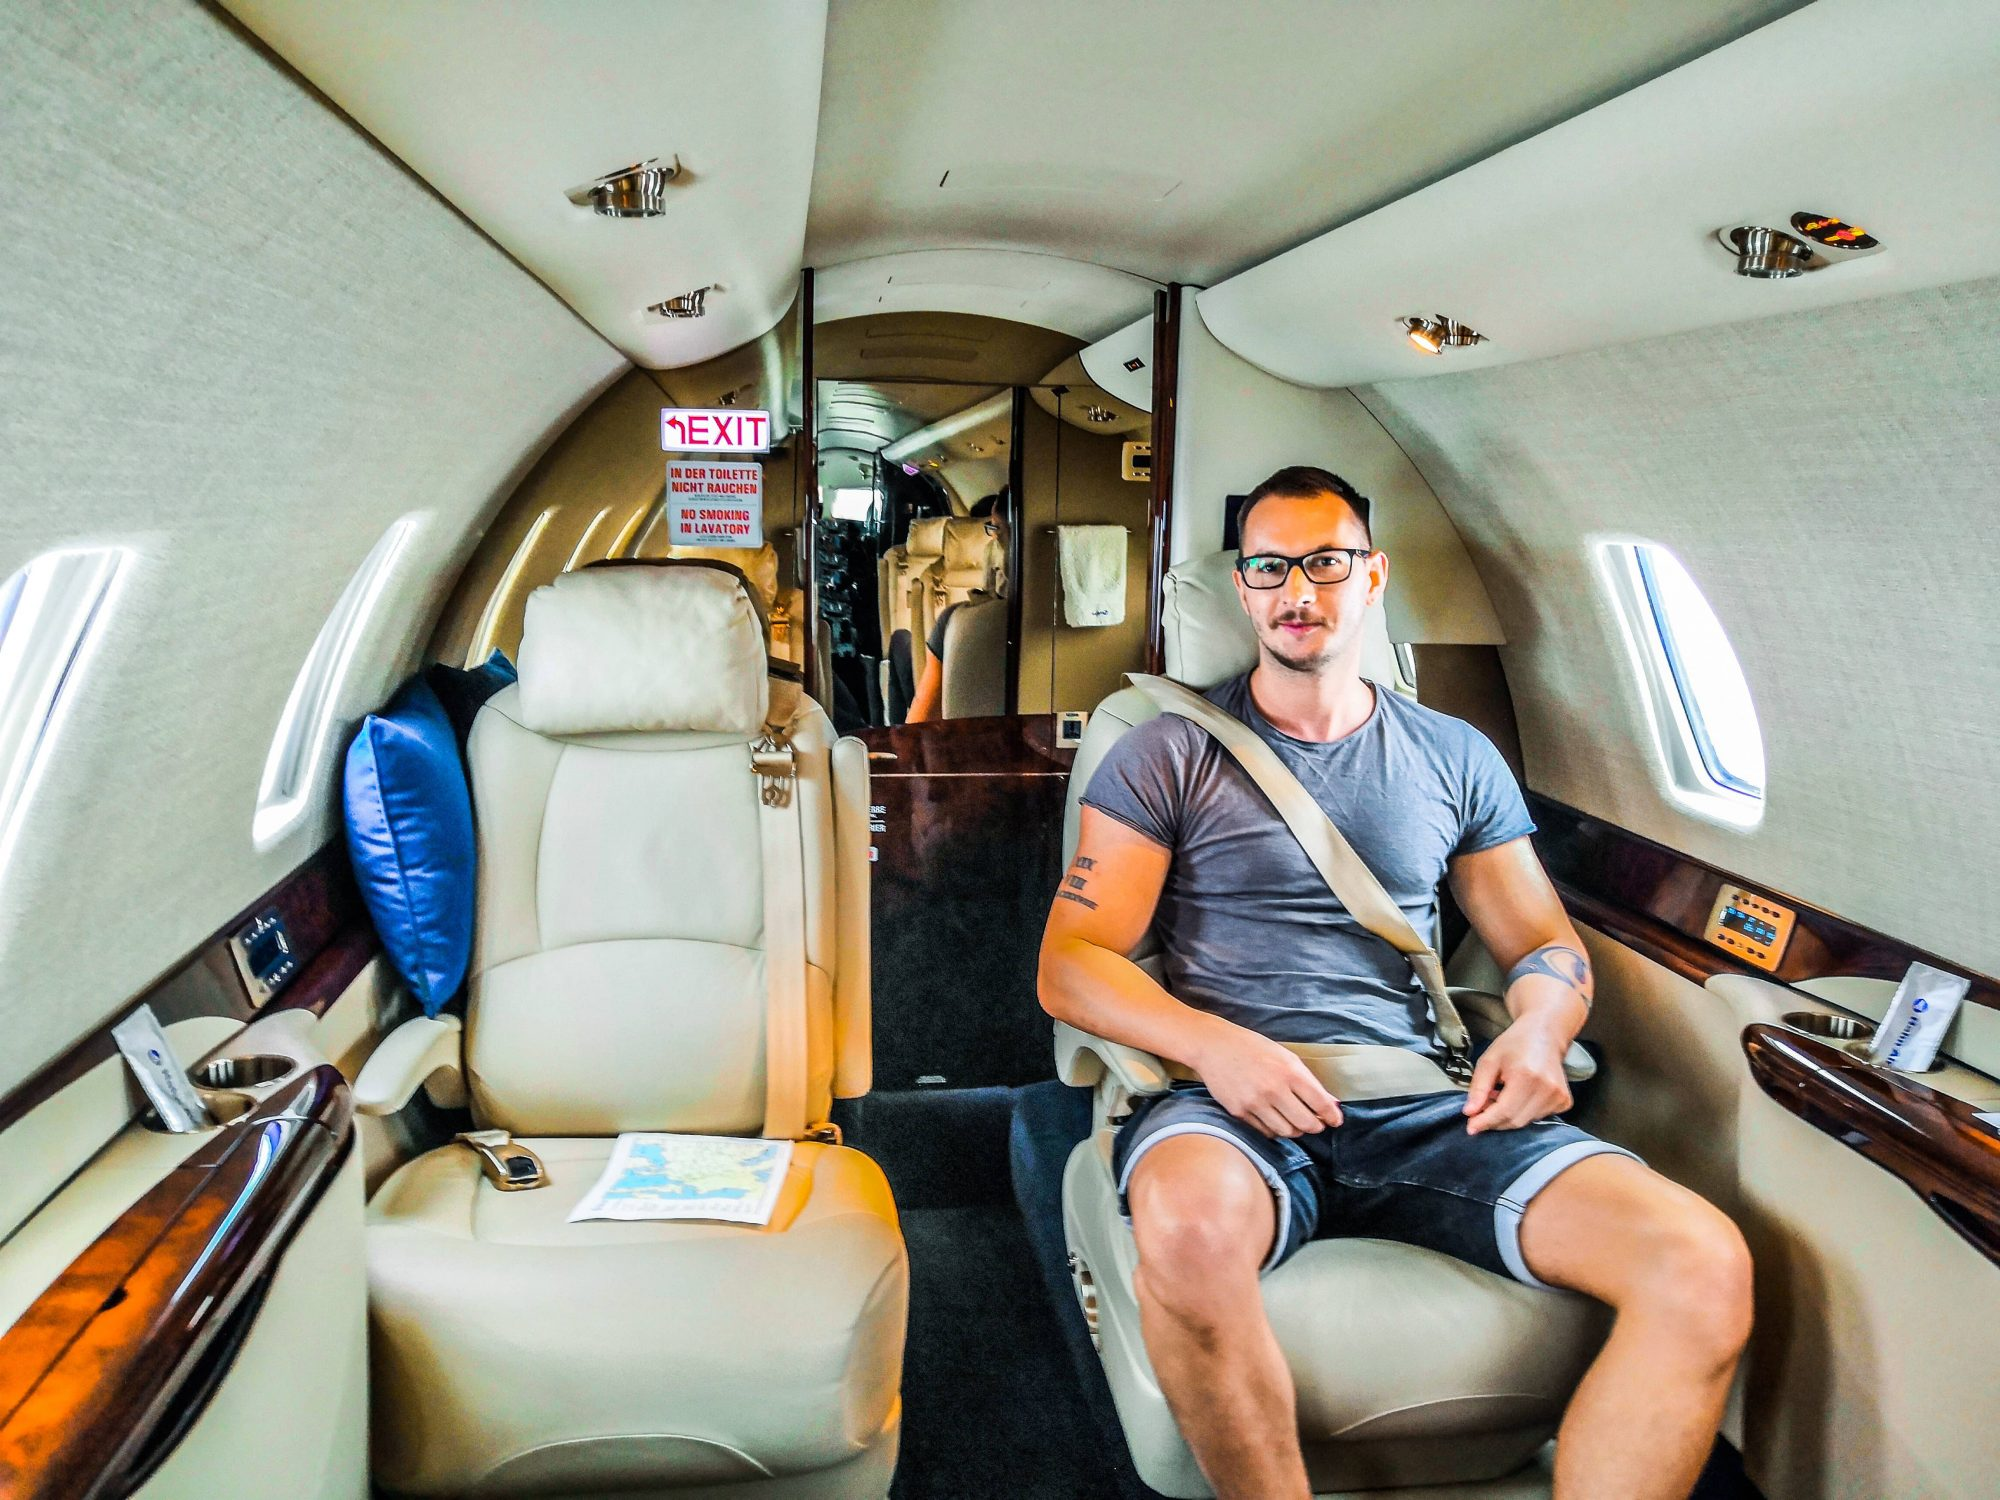 Passenger on private jet